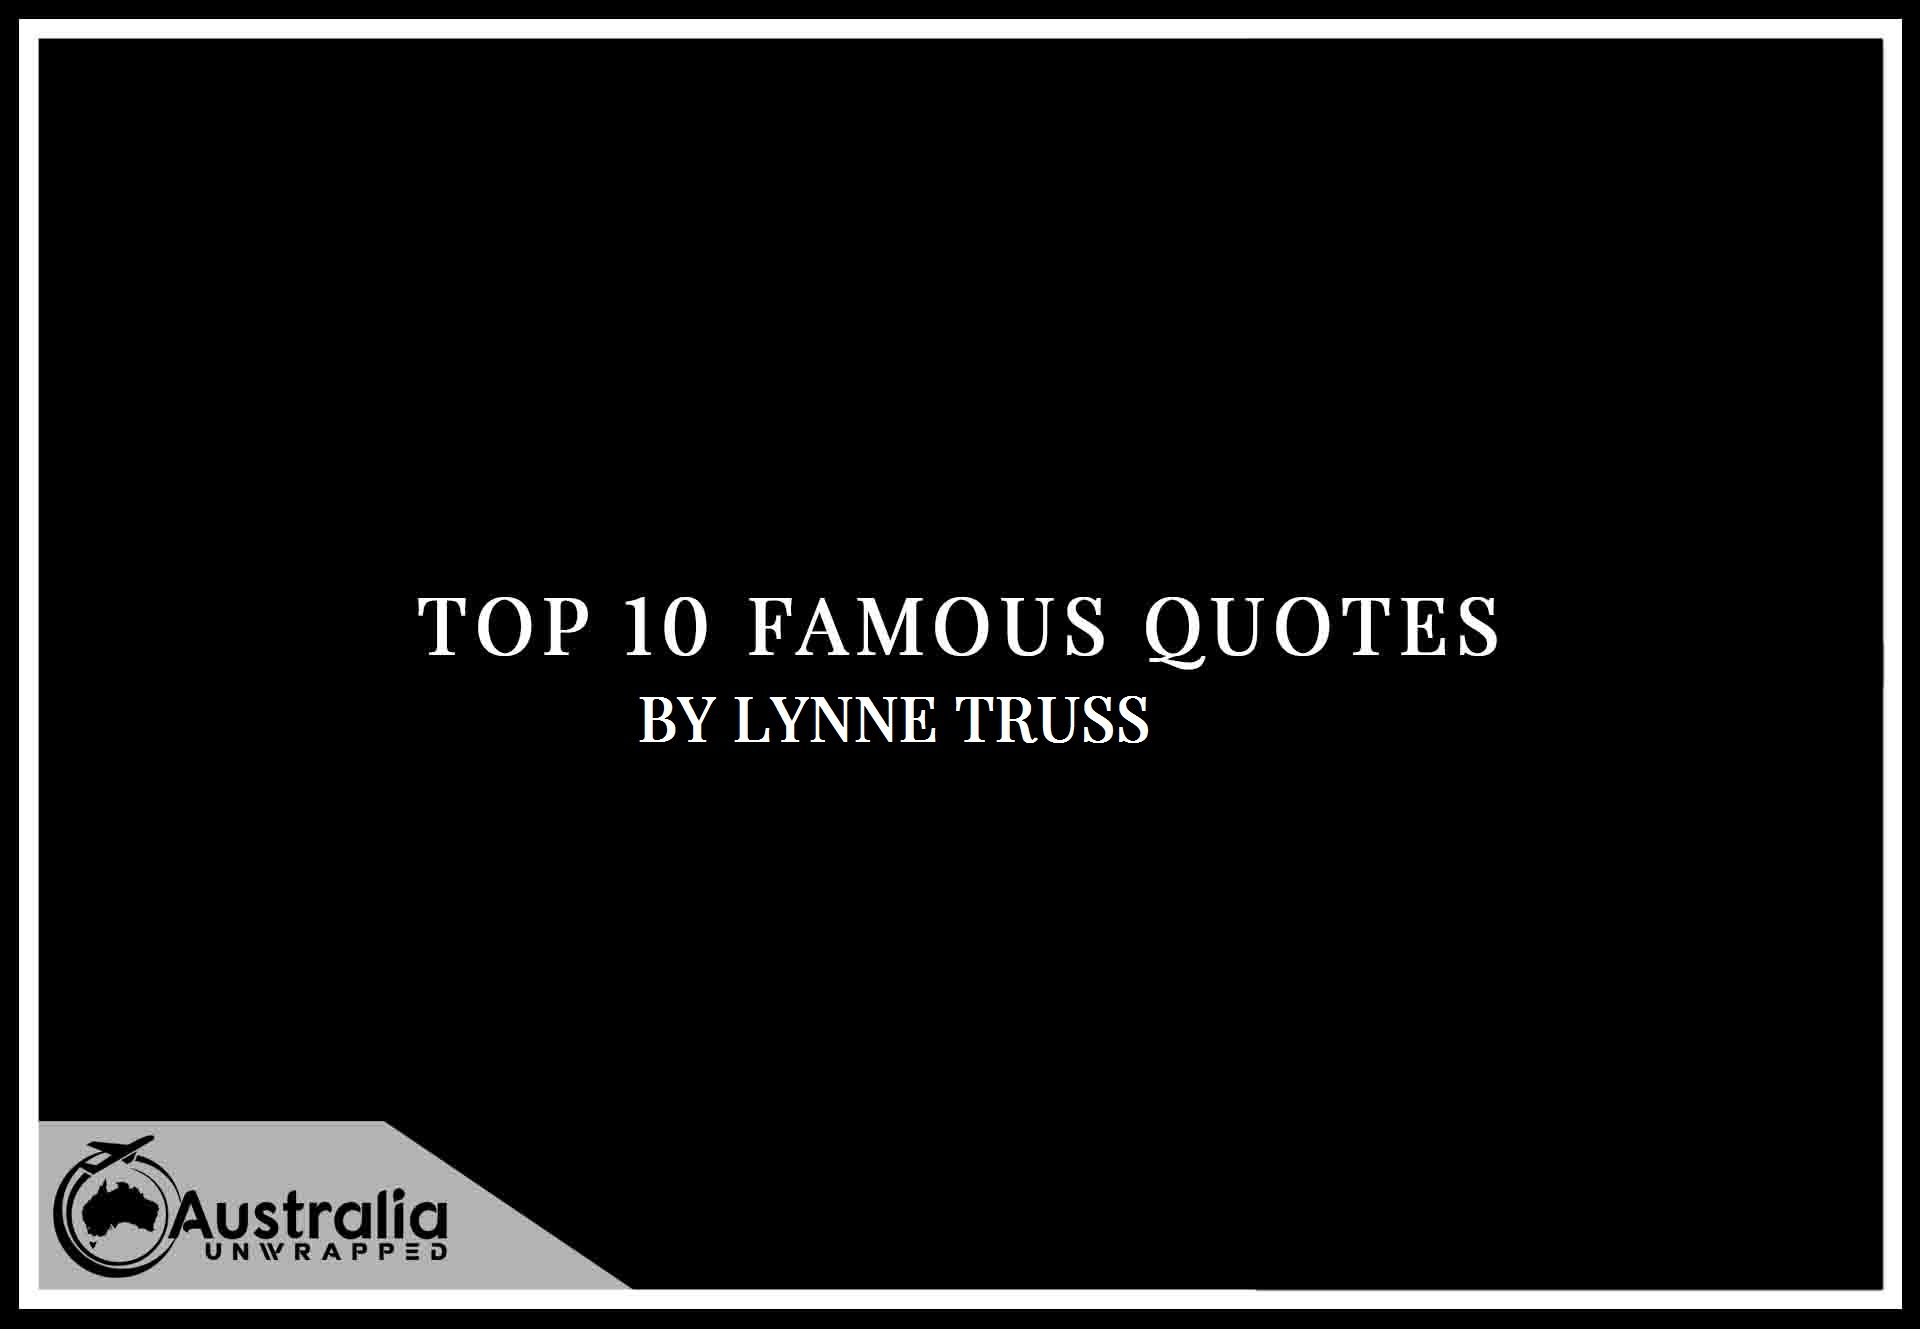 Lynne Truss's Top 10 Popular and Famous Quotes